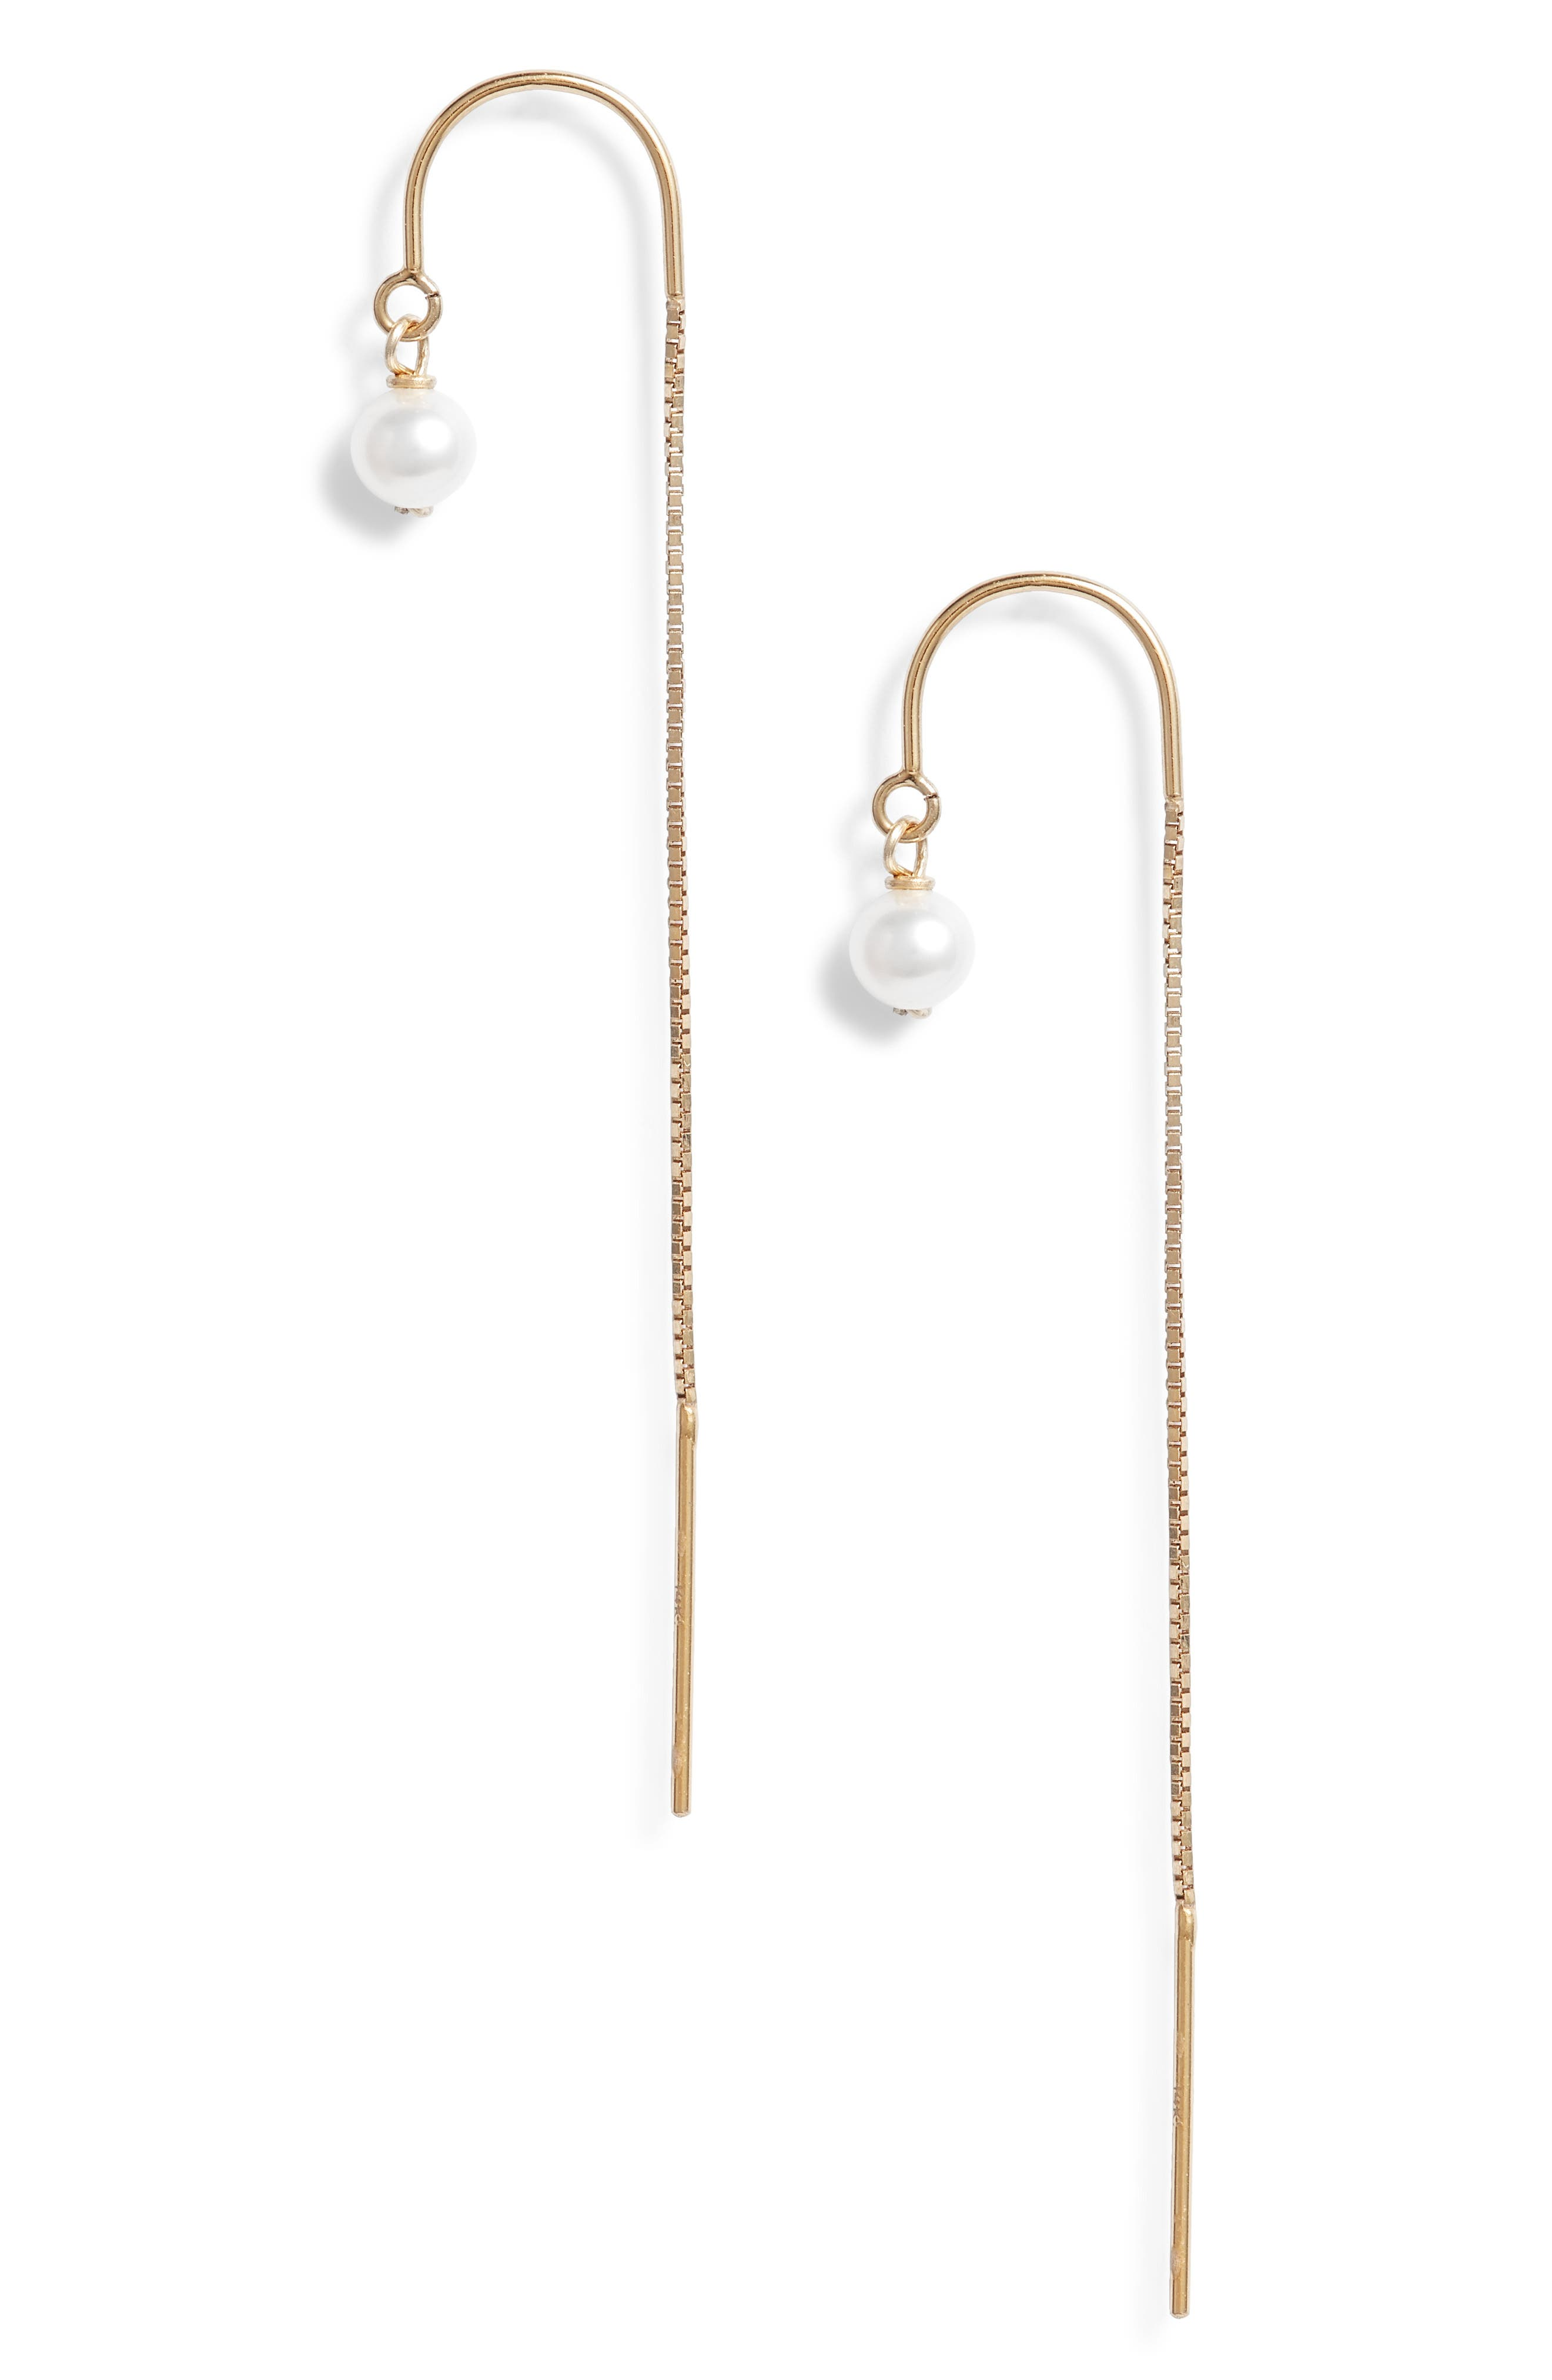 Tiny Pearl Threader Earrings,                         Main,                         color, Yellow Gold/ White Pearl